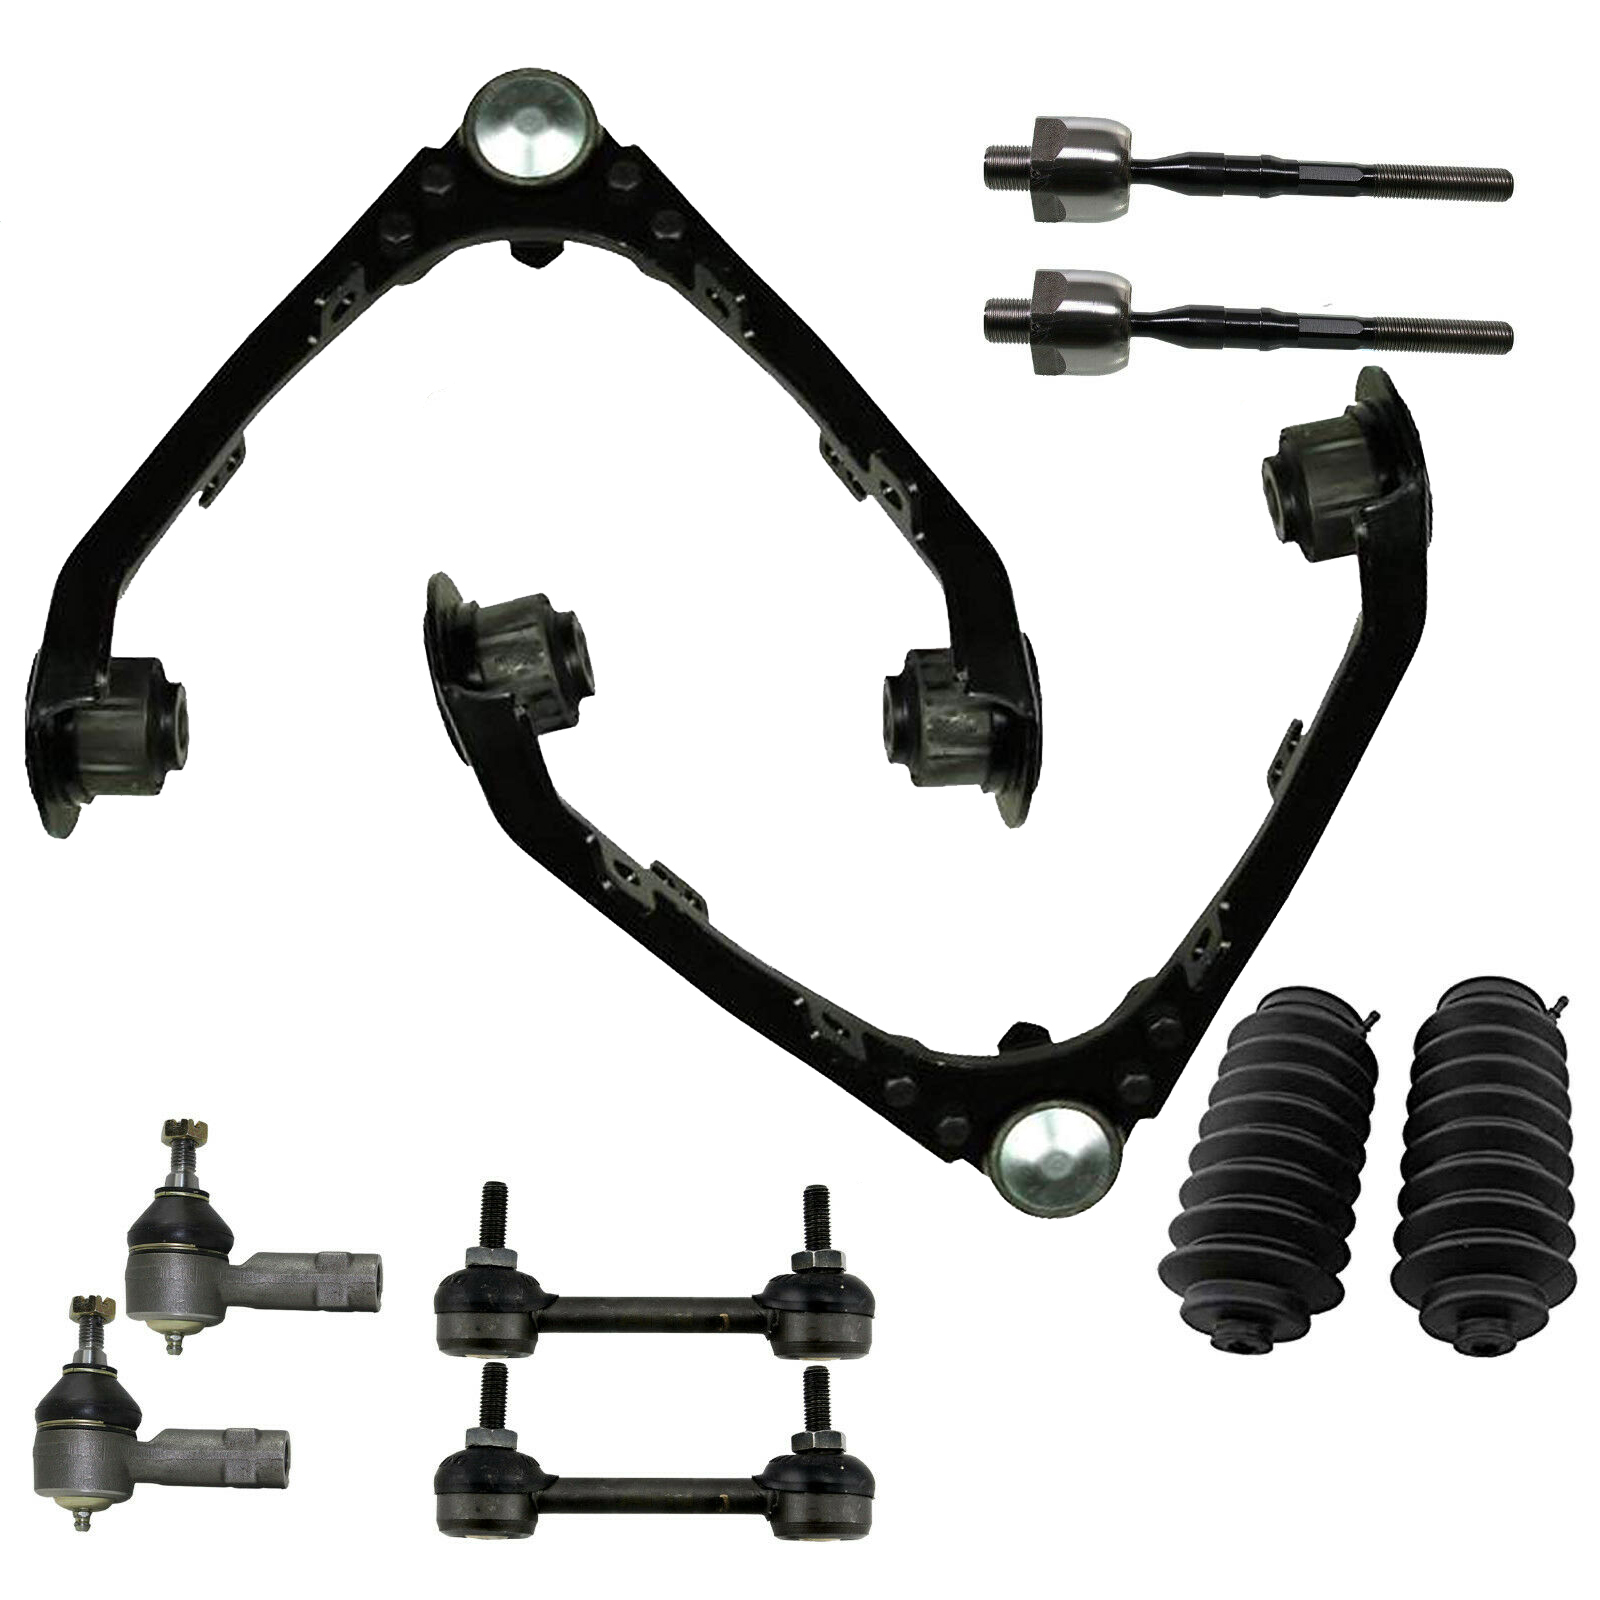 10PC Front Suspension Kit w/16mm Threads for 2WD Models EXCLUDING Z71